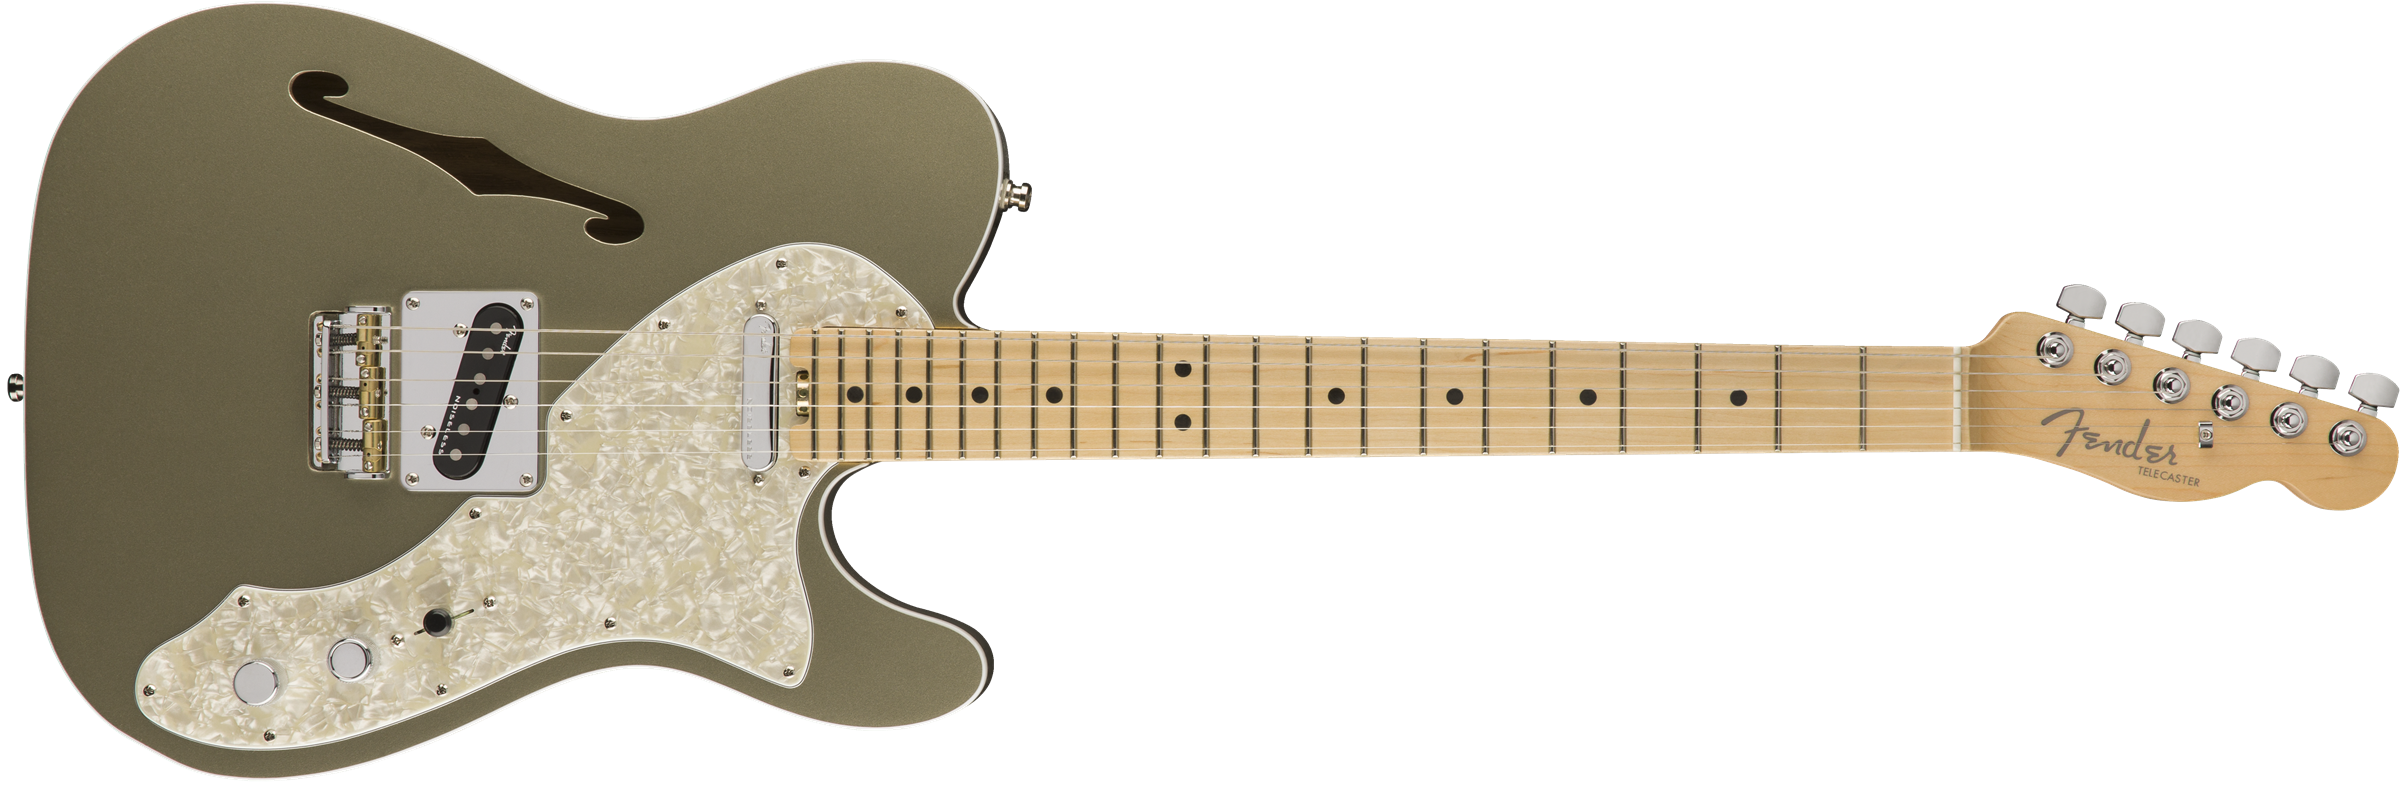 FENDER AM AMERICAN ELITE TELE THINLINE MN CHAMP - 0114312774